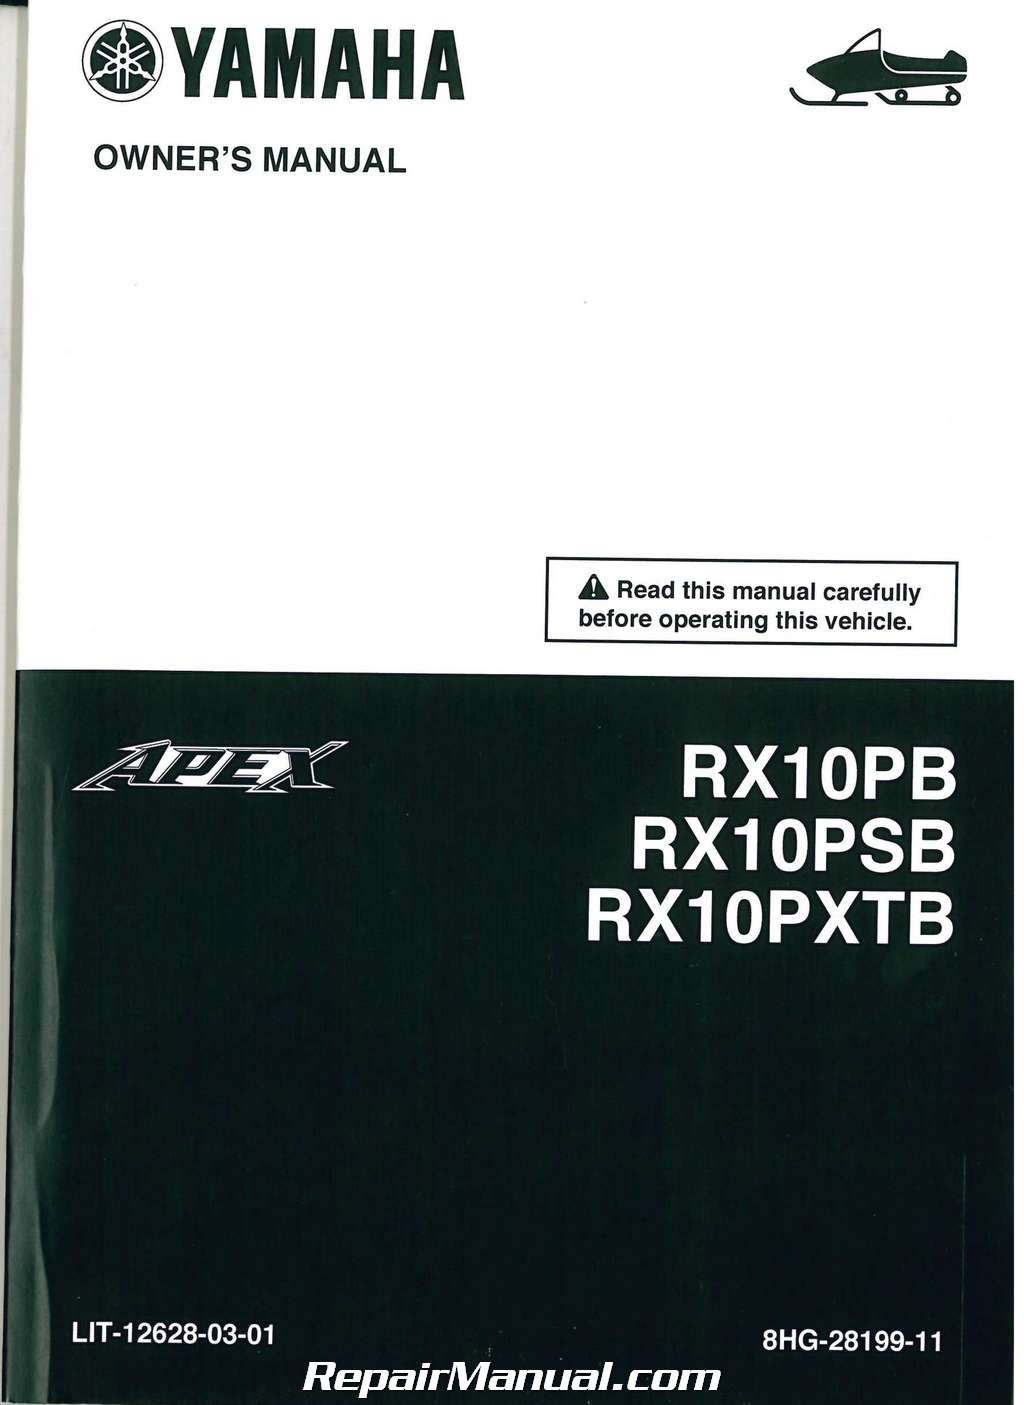 Details about 2012 Yamaha Apex RX10P Snowmobile Owners Manual :  LIT-12628-03-01